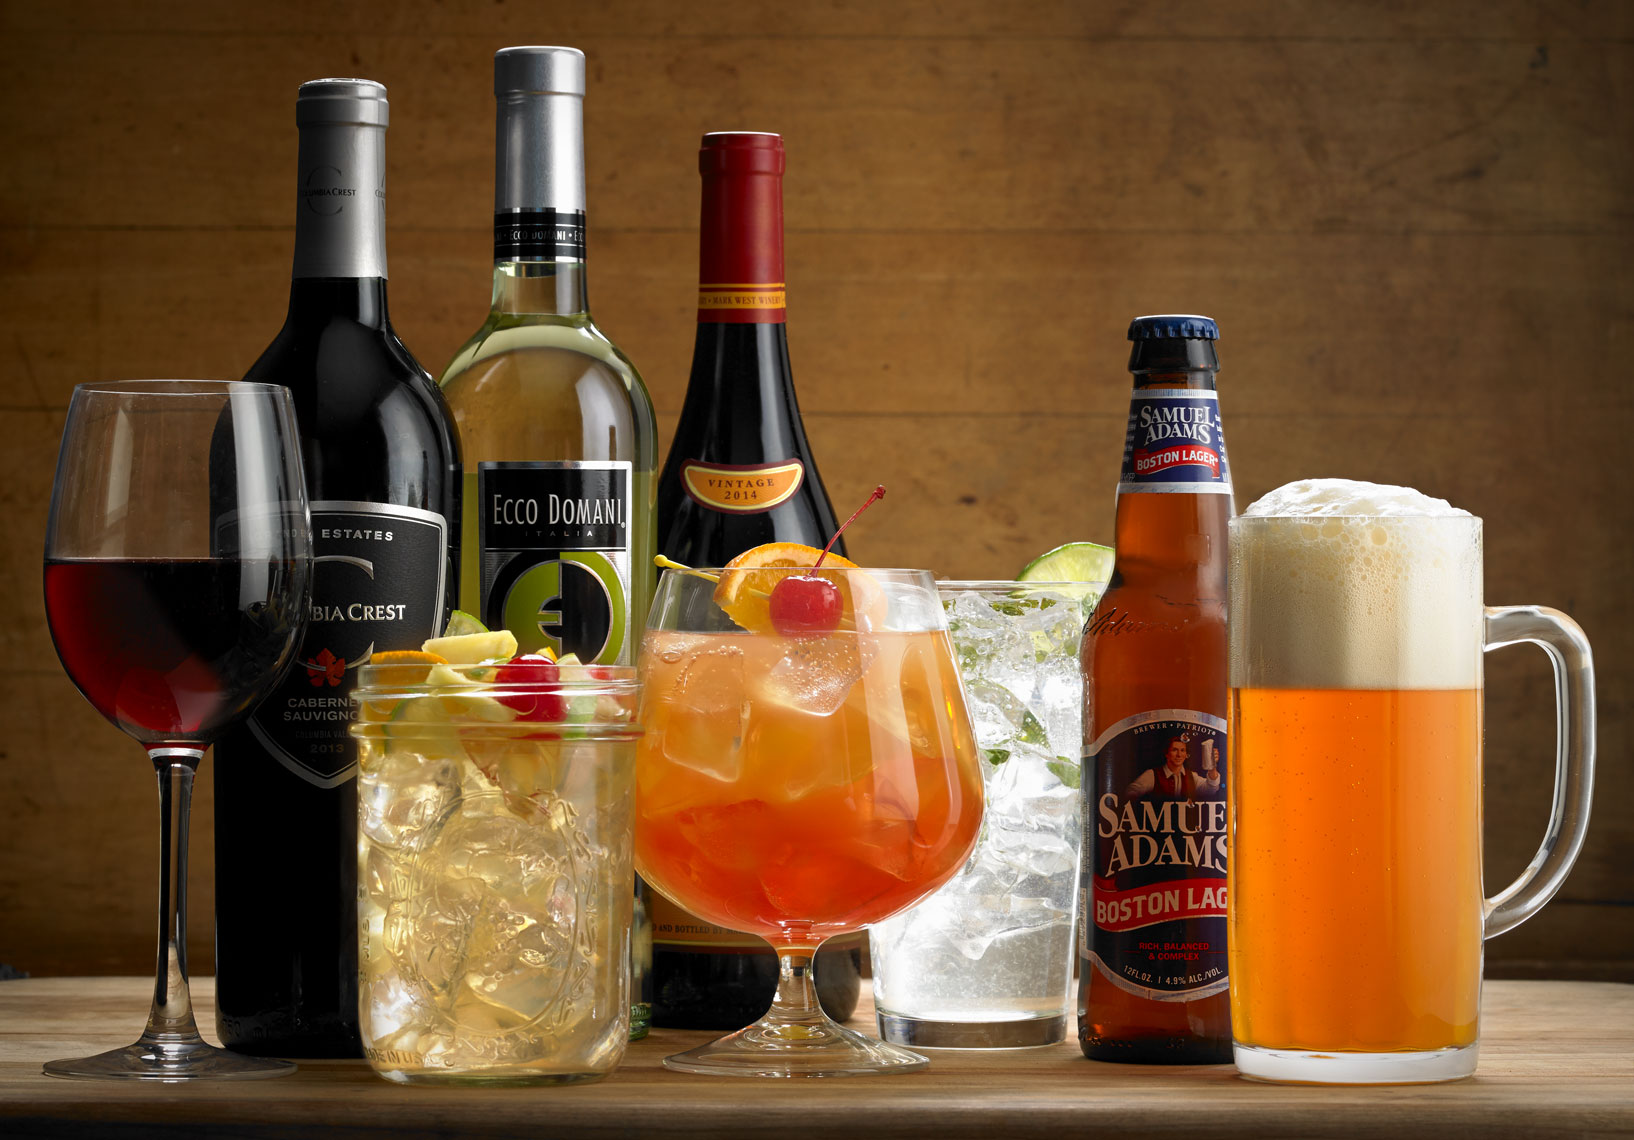 Mixed drinks, wine, and beer, various alcoholic restaurant offerings.  Food photography, InsideOut Studios.